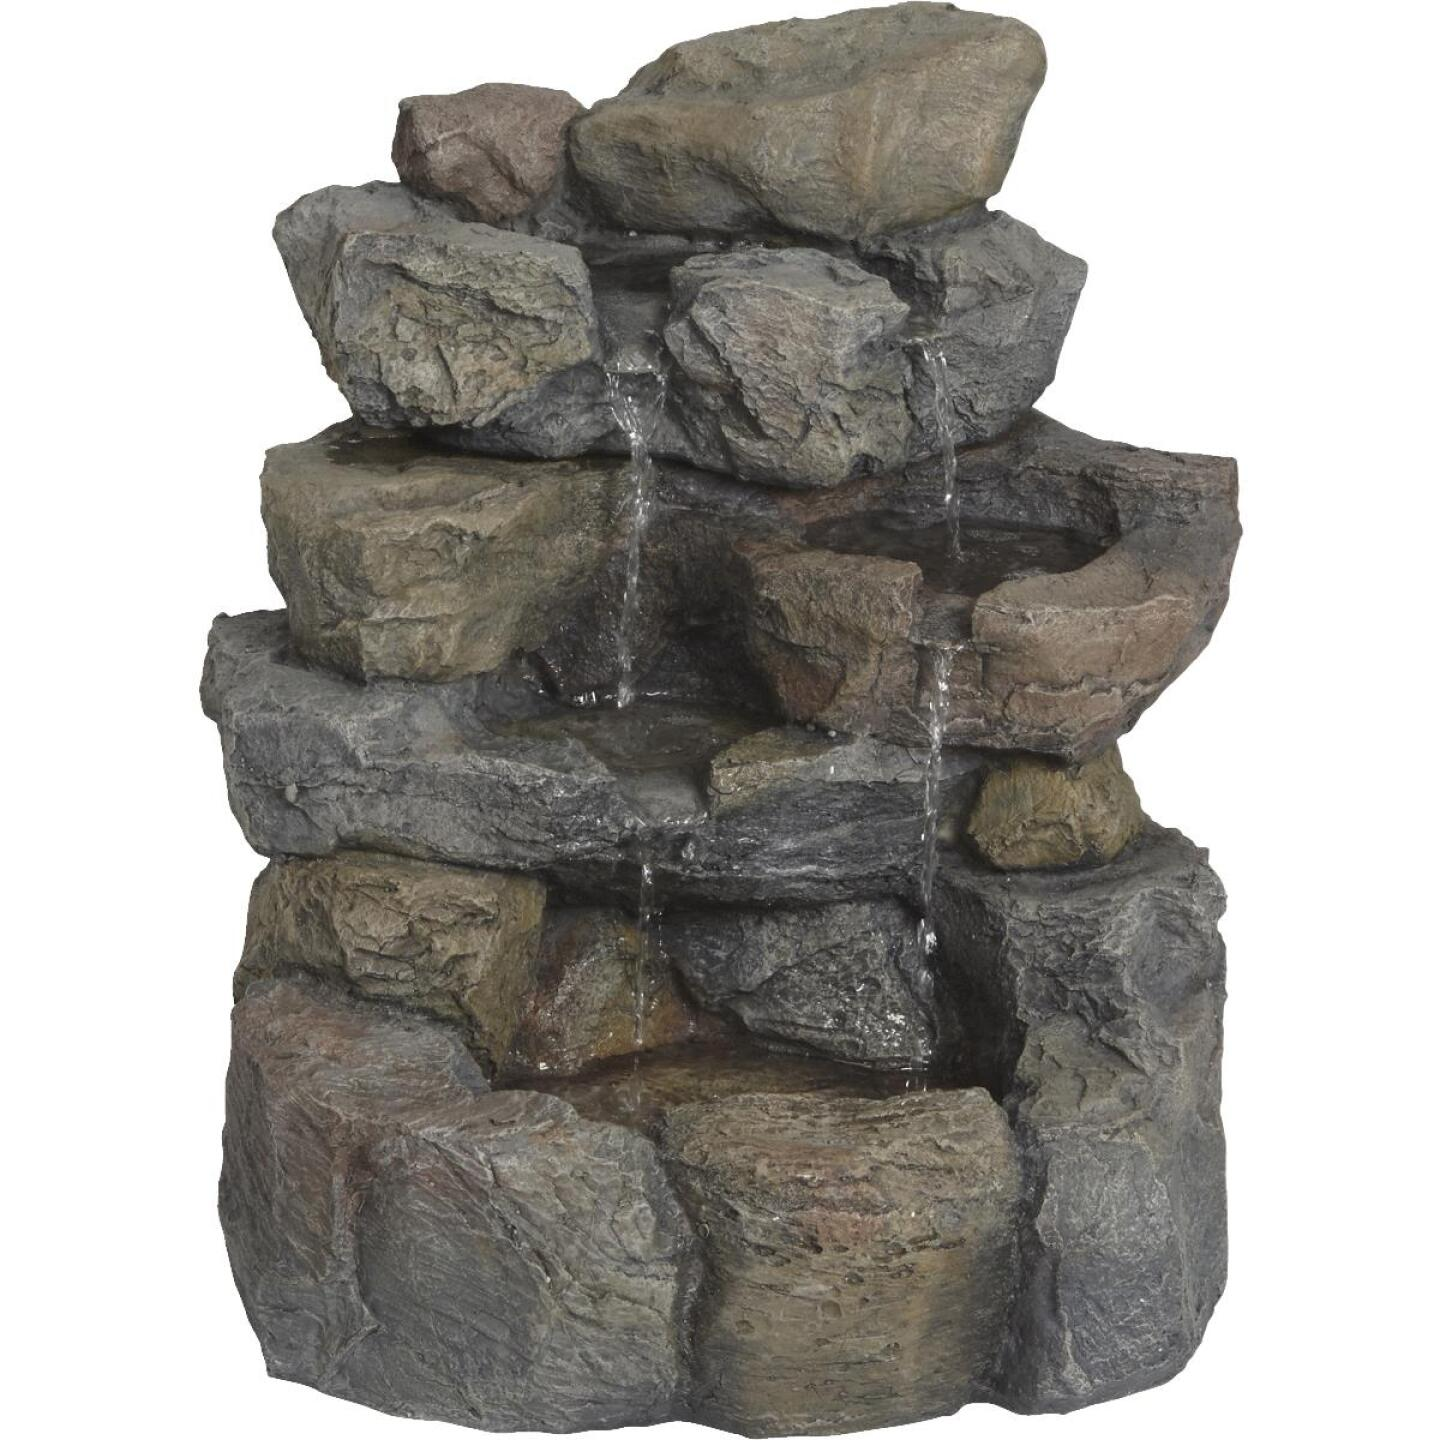 Best Garden 17 In. W. x 20 In. H. x 16 In. L. Resin Landscape Rock Fountain Image 2